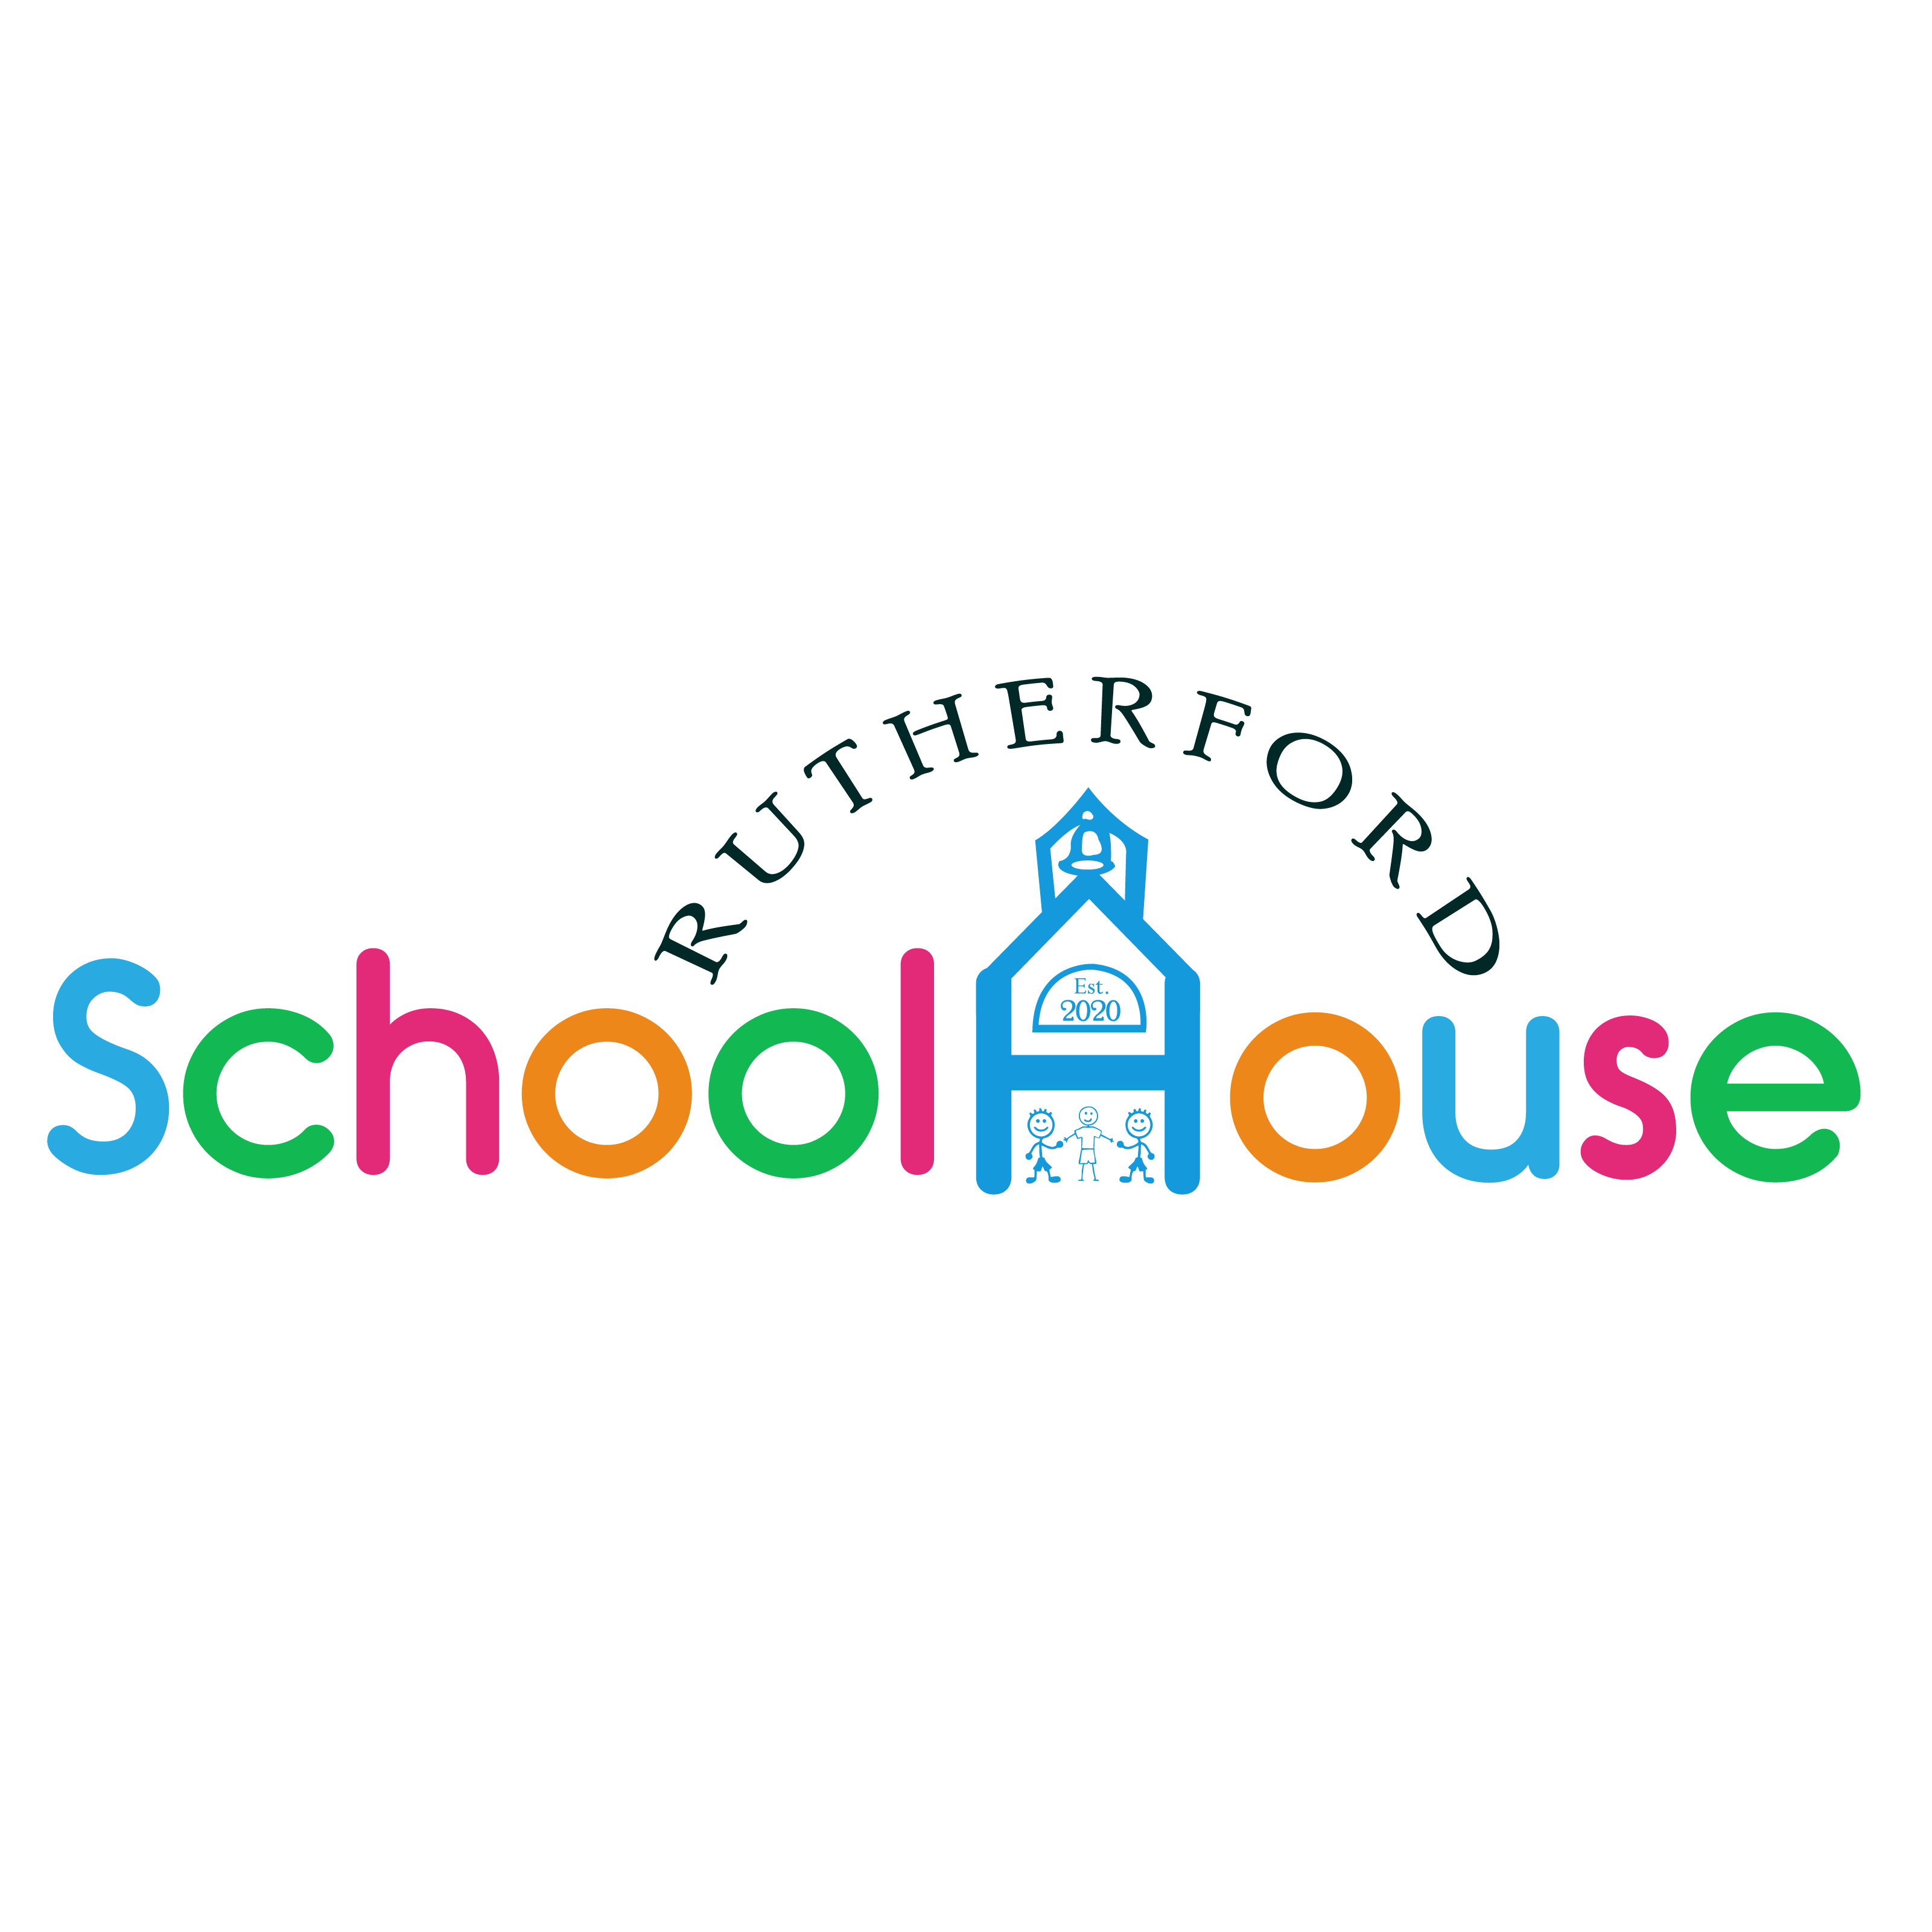 The Rutherford Schoolhouse